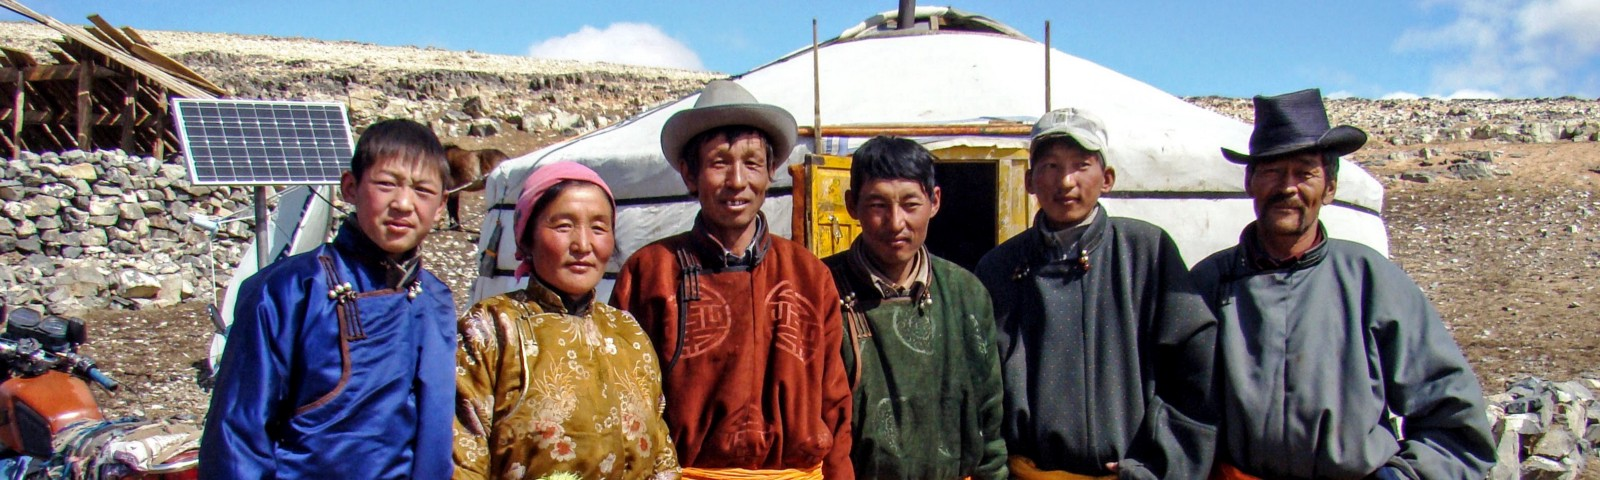 In Mongolia, TFSCB has supported a survey on nomadic households in remote rural areas to enable inclusive decision-making, wh